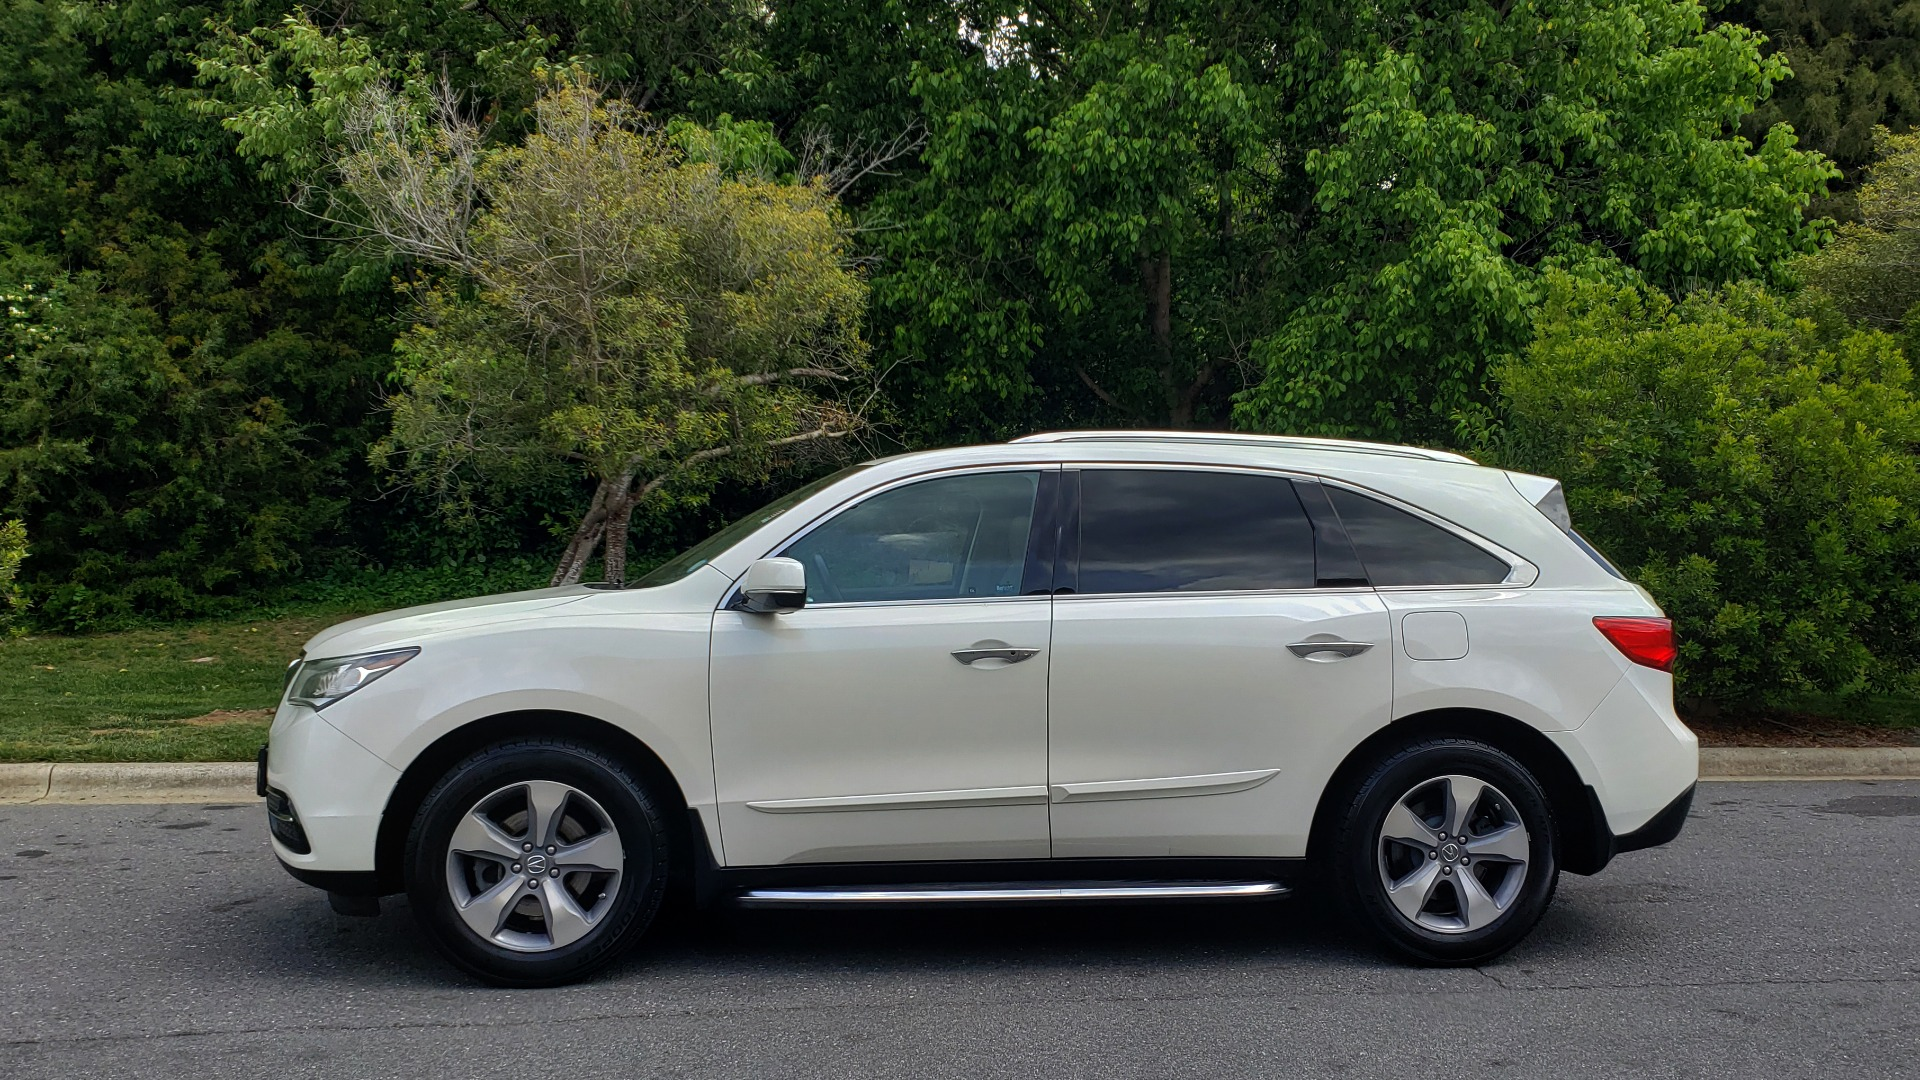 Used 2014 Acura MDX AWD / NAV / SUNROOF / 3-ROW / REARVIEW / PREMIUM SND for sale Sold at Formula Imports in Charlotte NC 28227 2